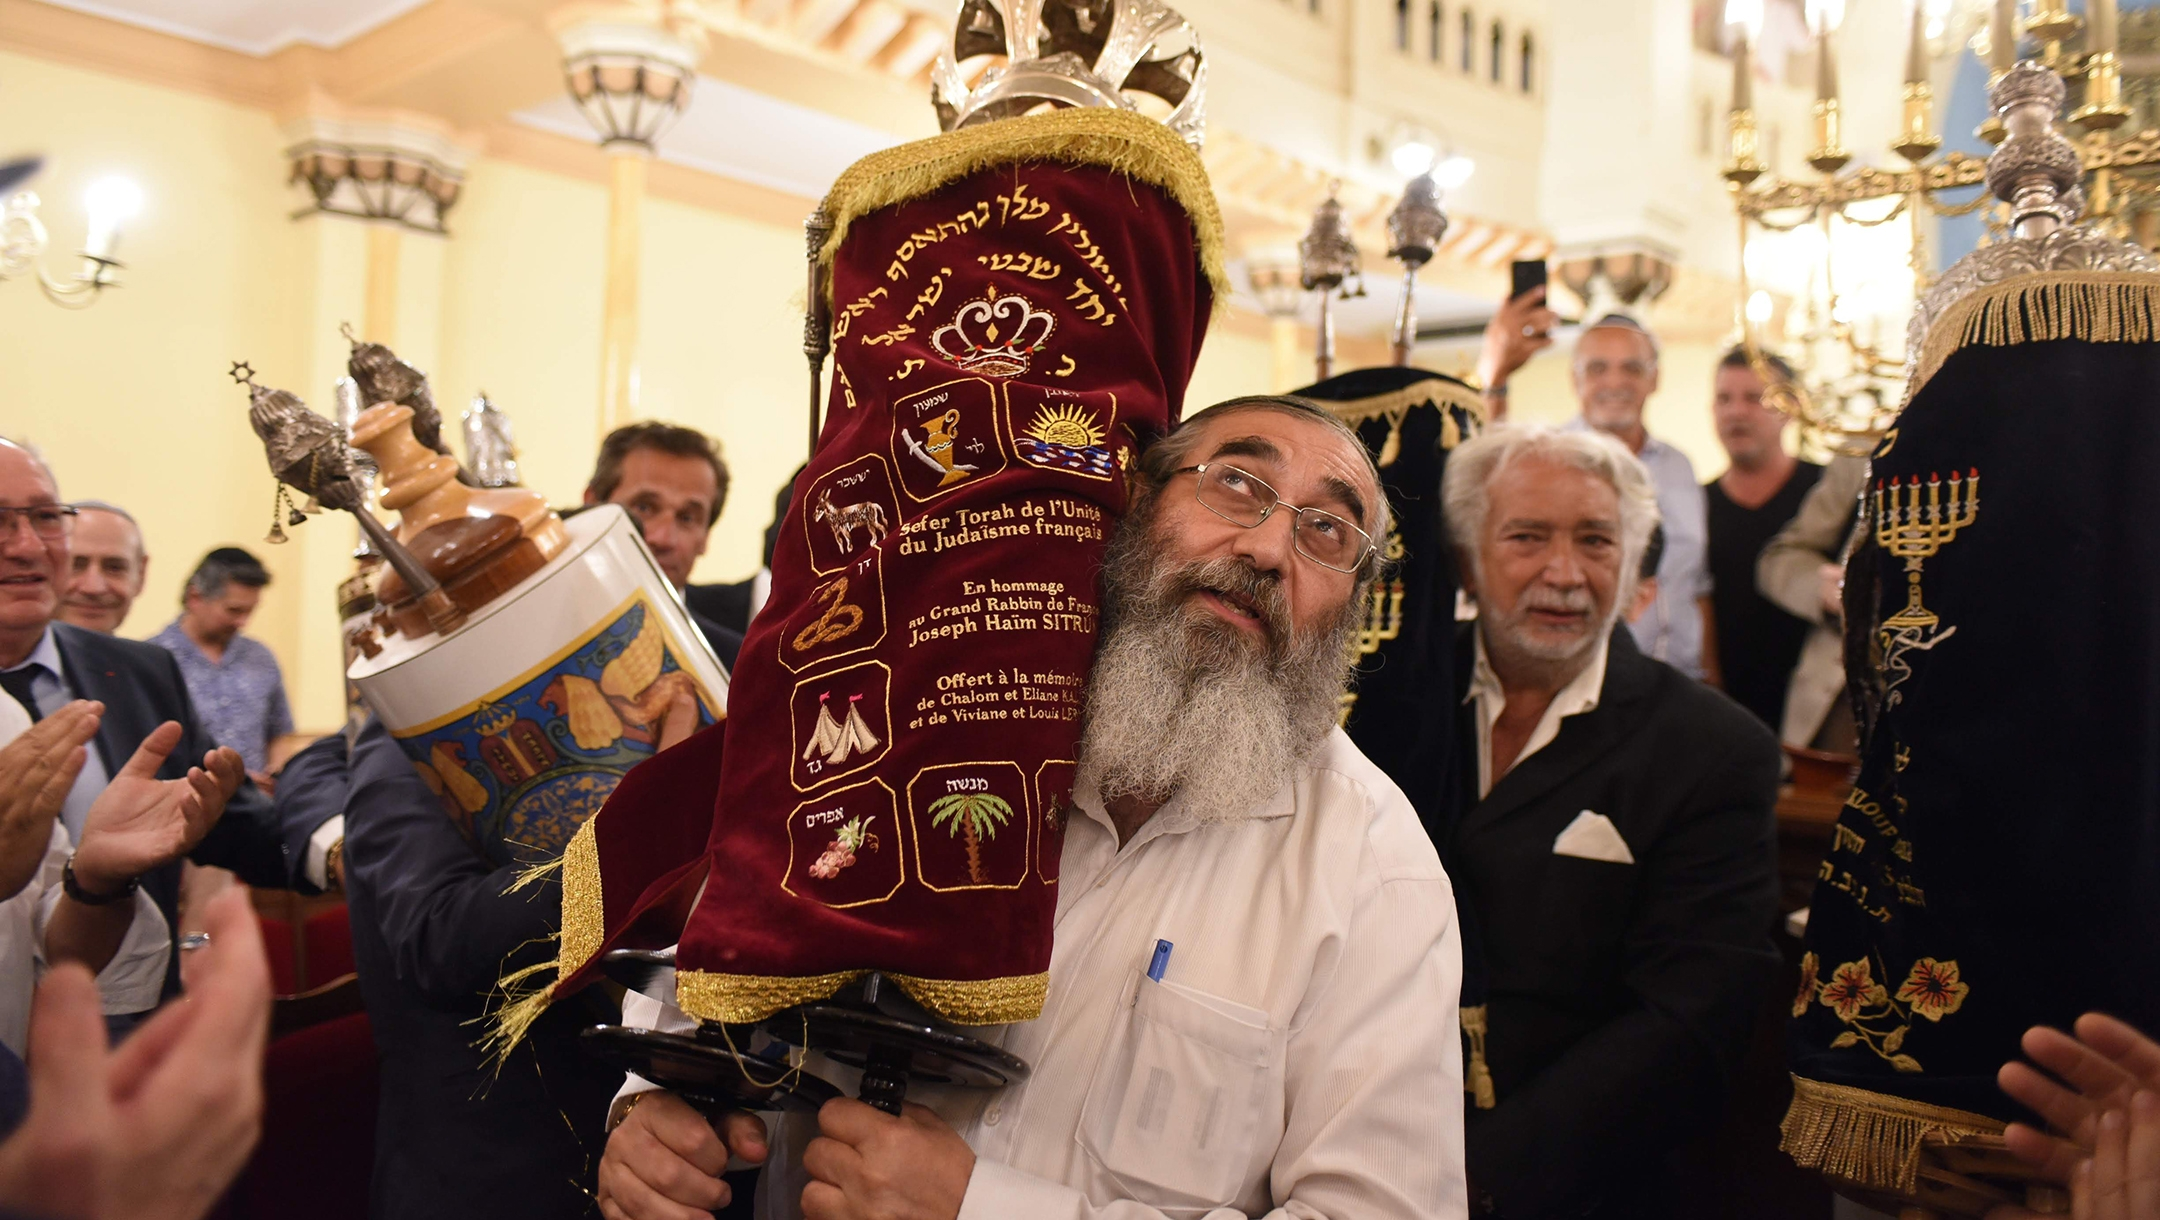 French Jews celebrating the inauguration of a new Torah scroll at the Grand Synagogue of Nice on July 11, 2019. (Courtesy of Consistoire Nice/Henri Belhassen)